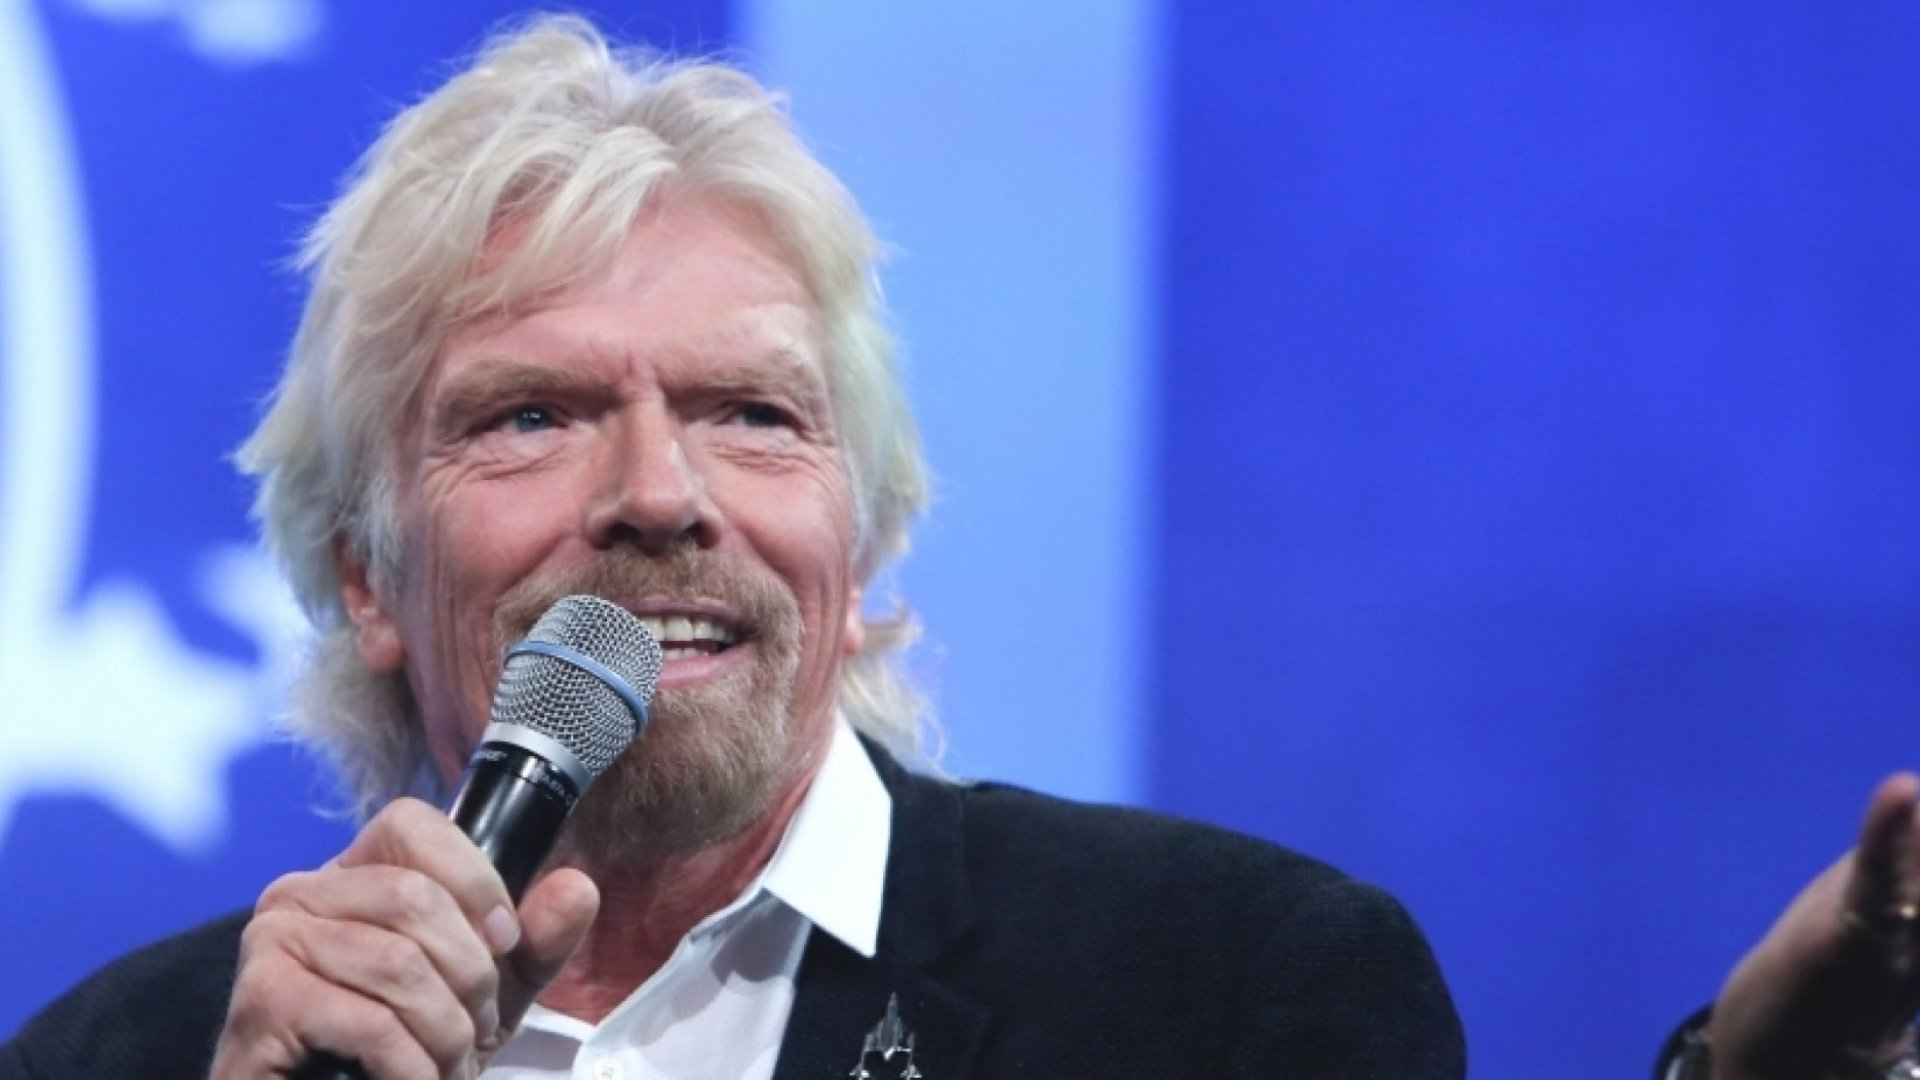 Richard Branson's 1 Rule for Embracing Change